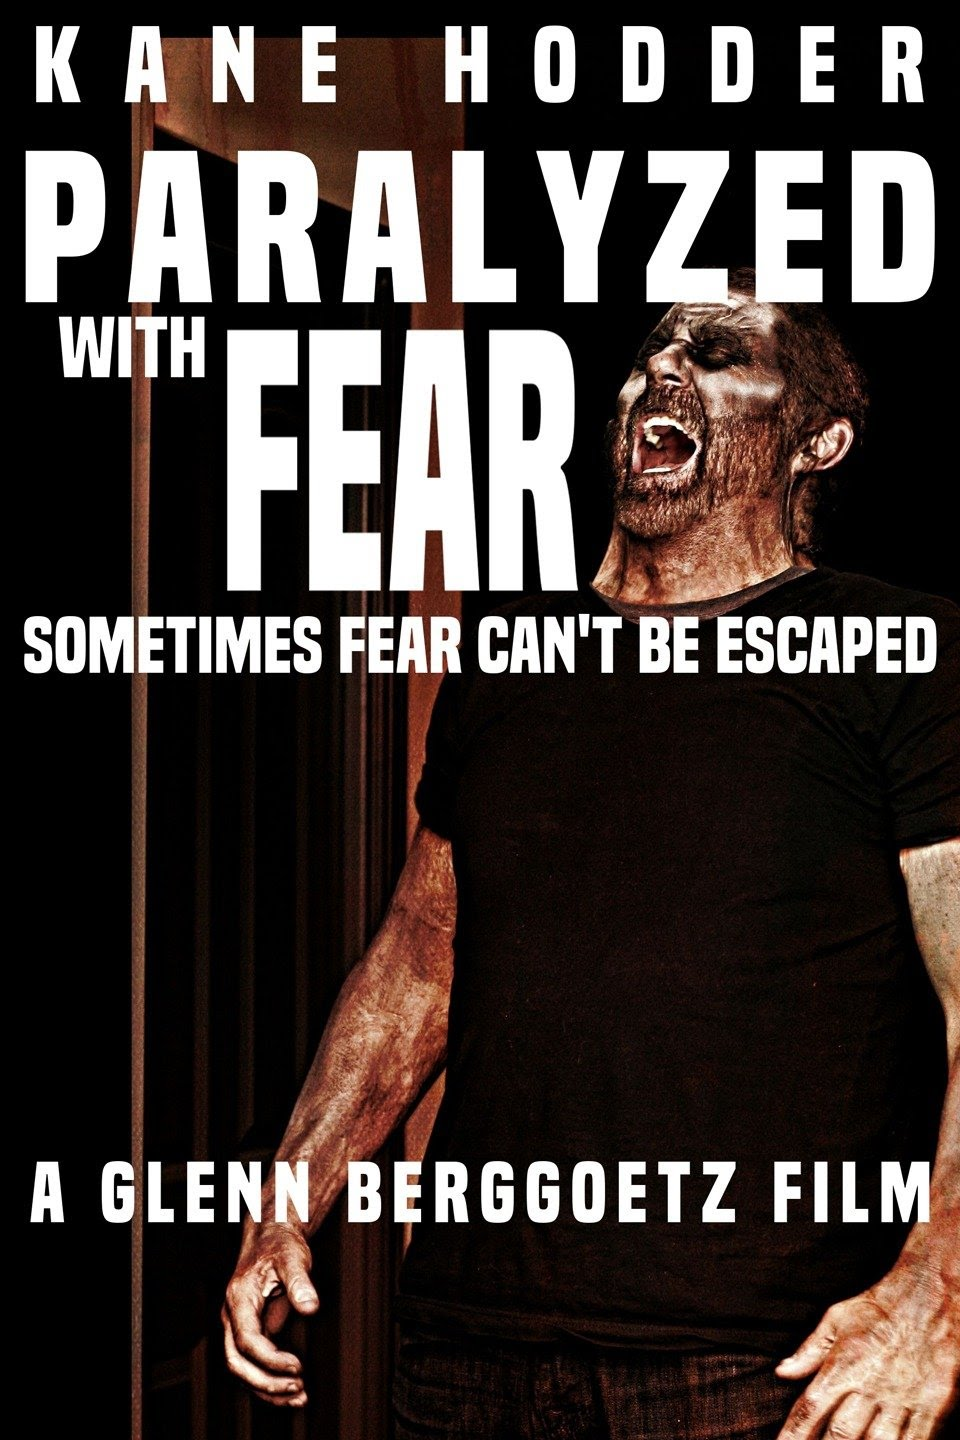 Official Trailer: Paralyzed with Fear featuring Kane Hodder